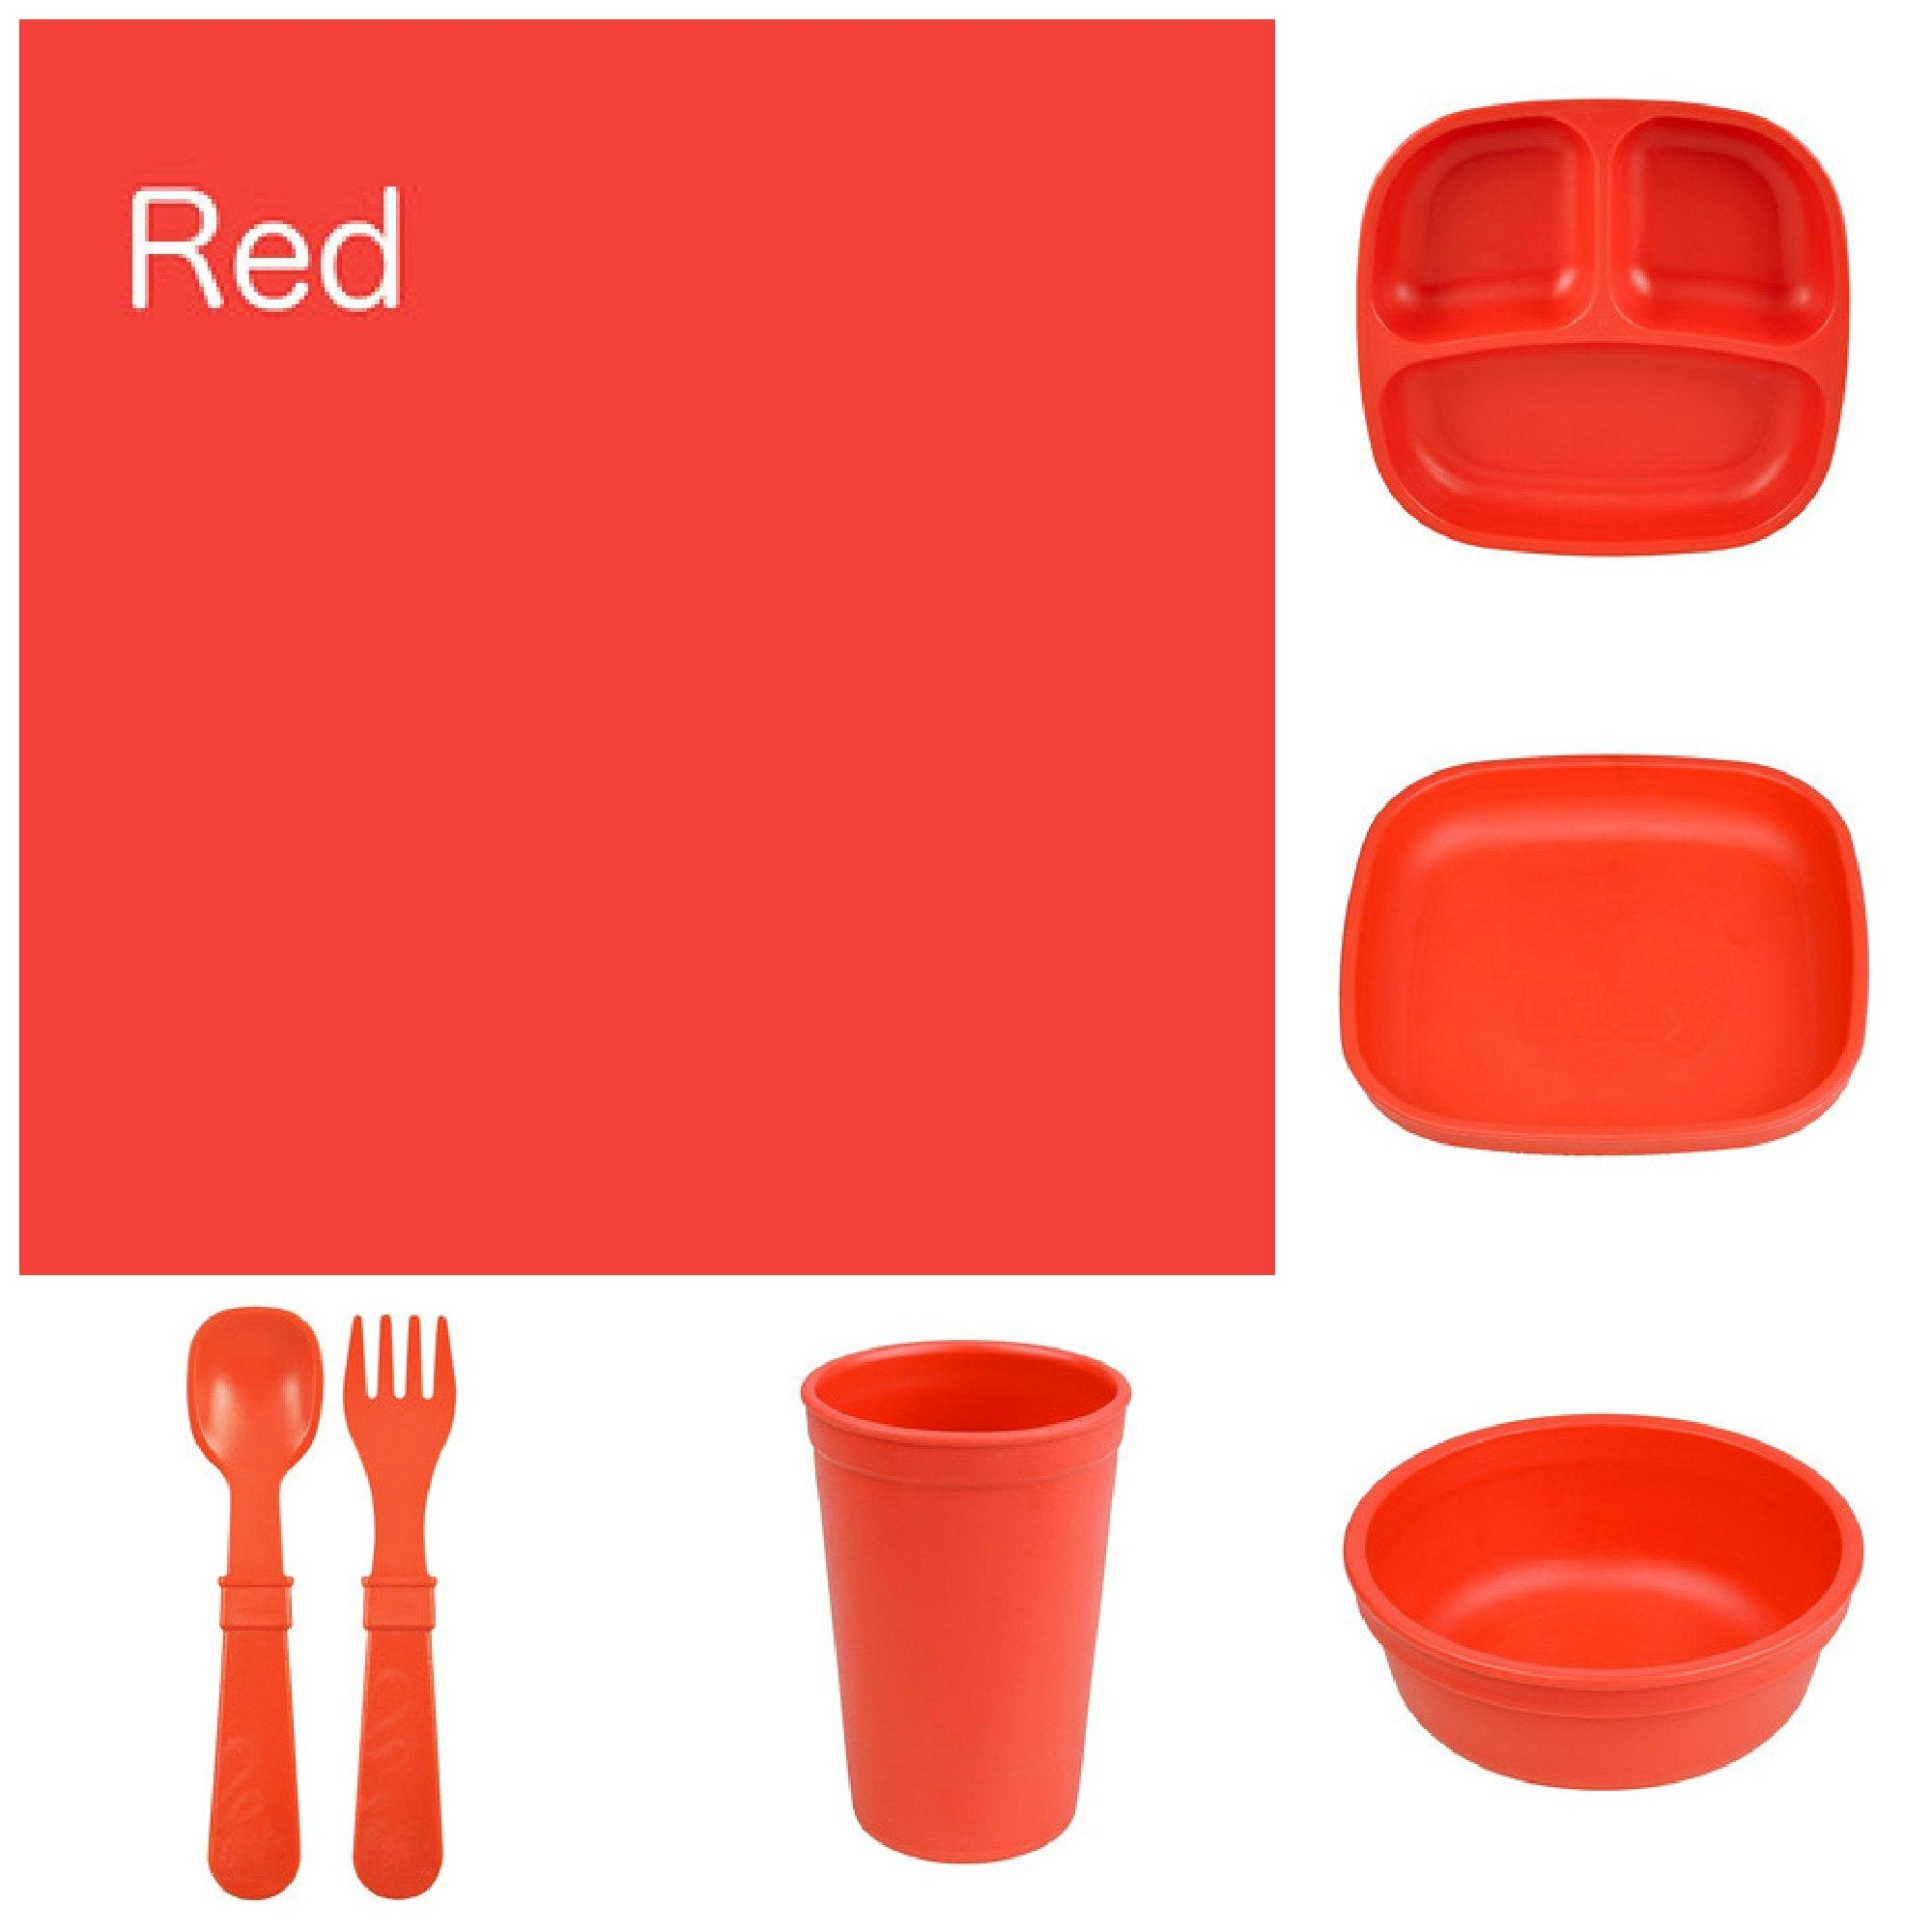 Re-Play Recycled Dinner Set - Red